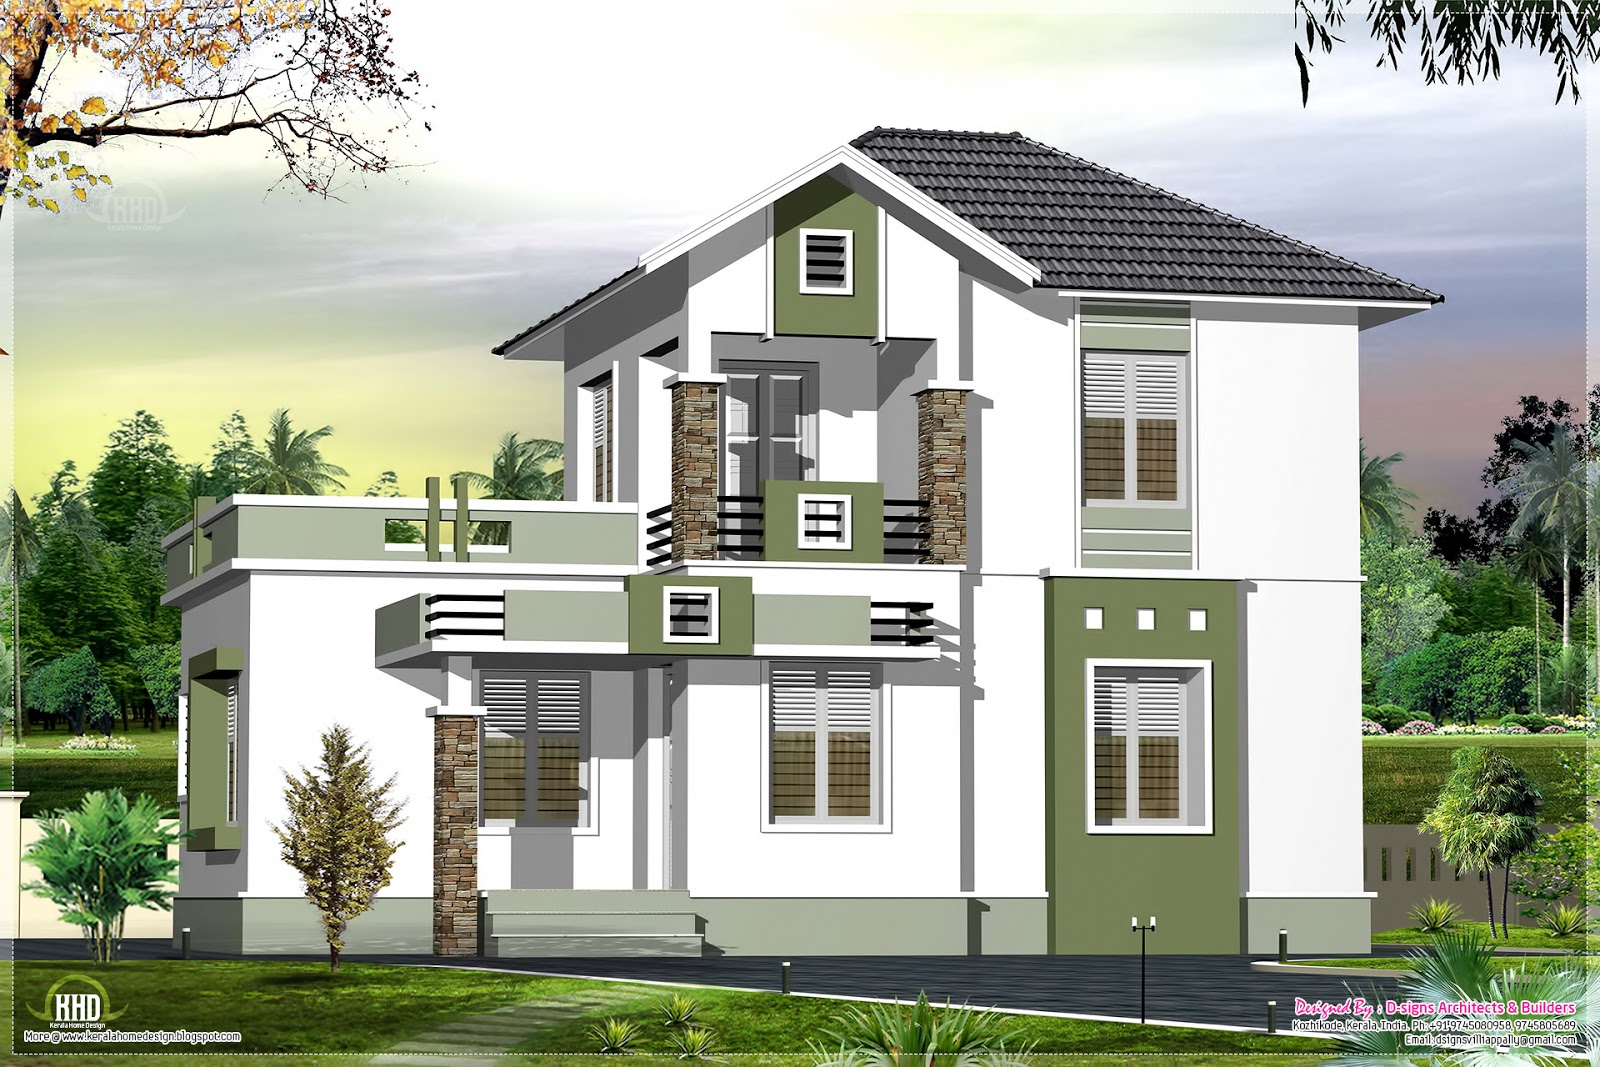 Small double floor home design in 1200 kerala home design and floor plans Home design and budget